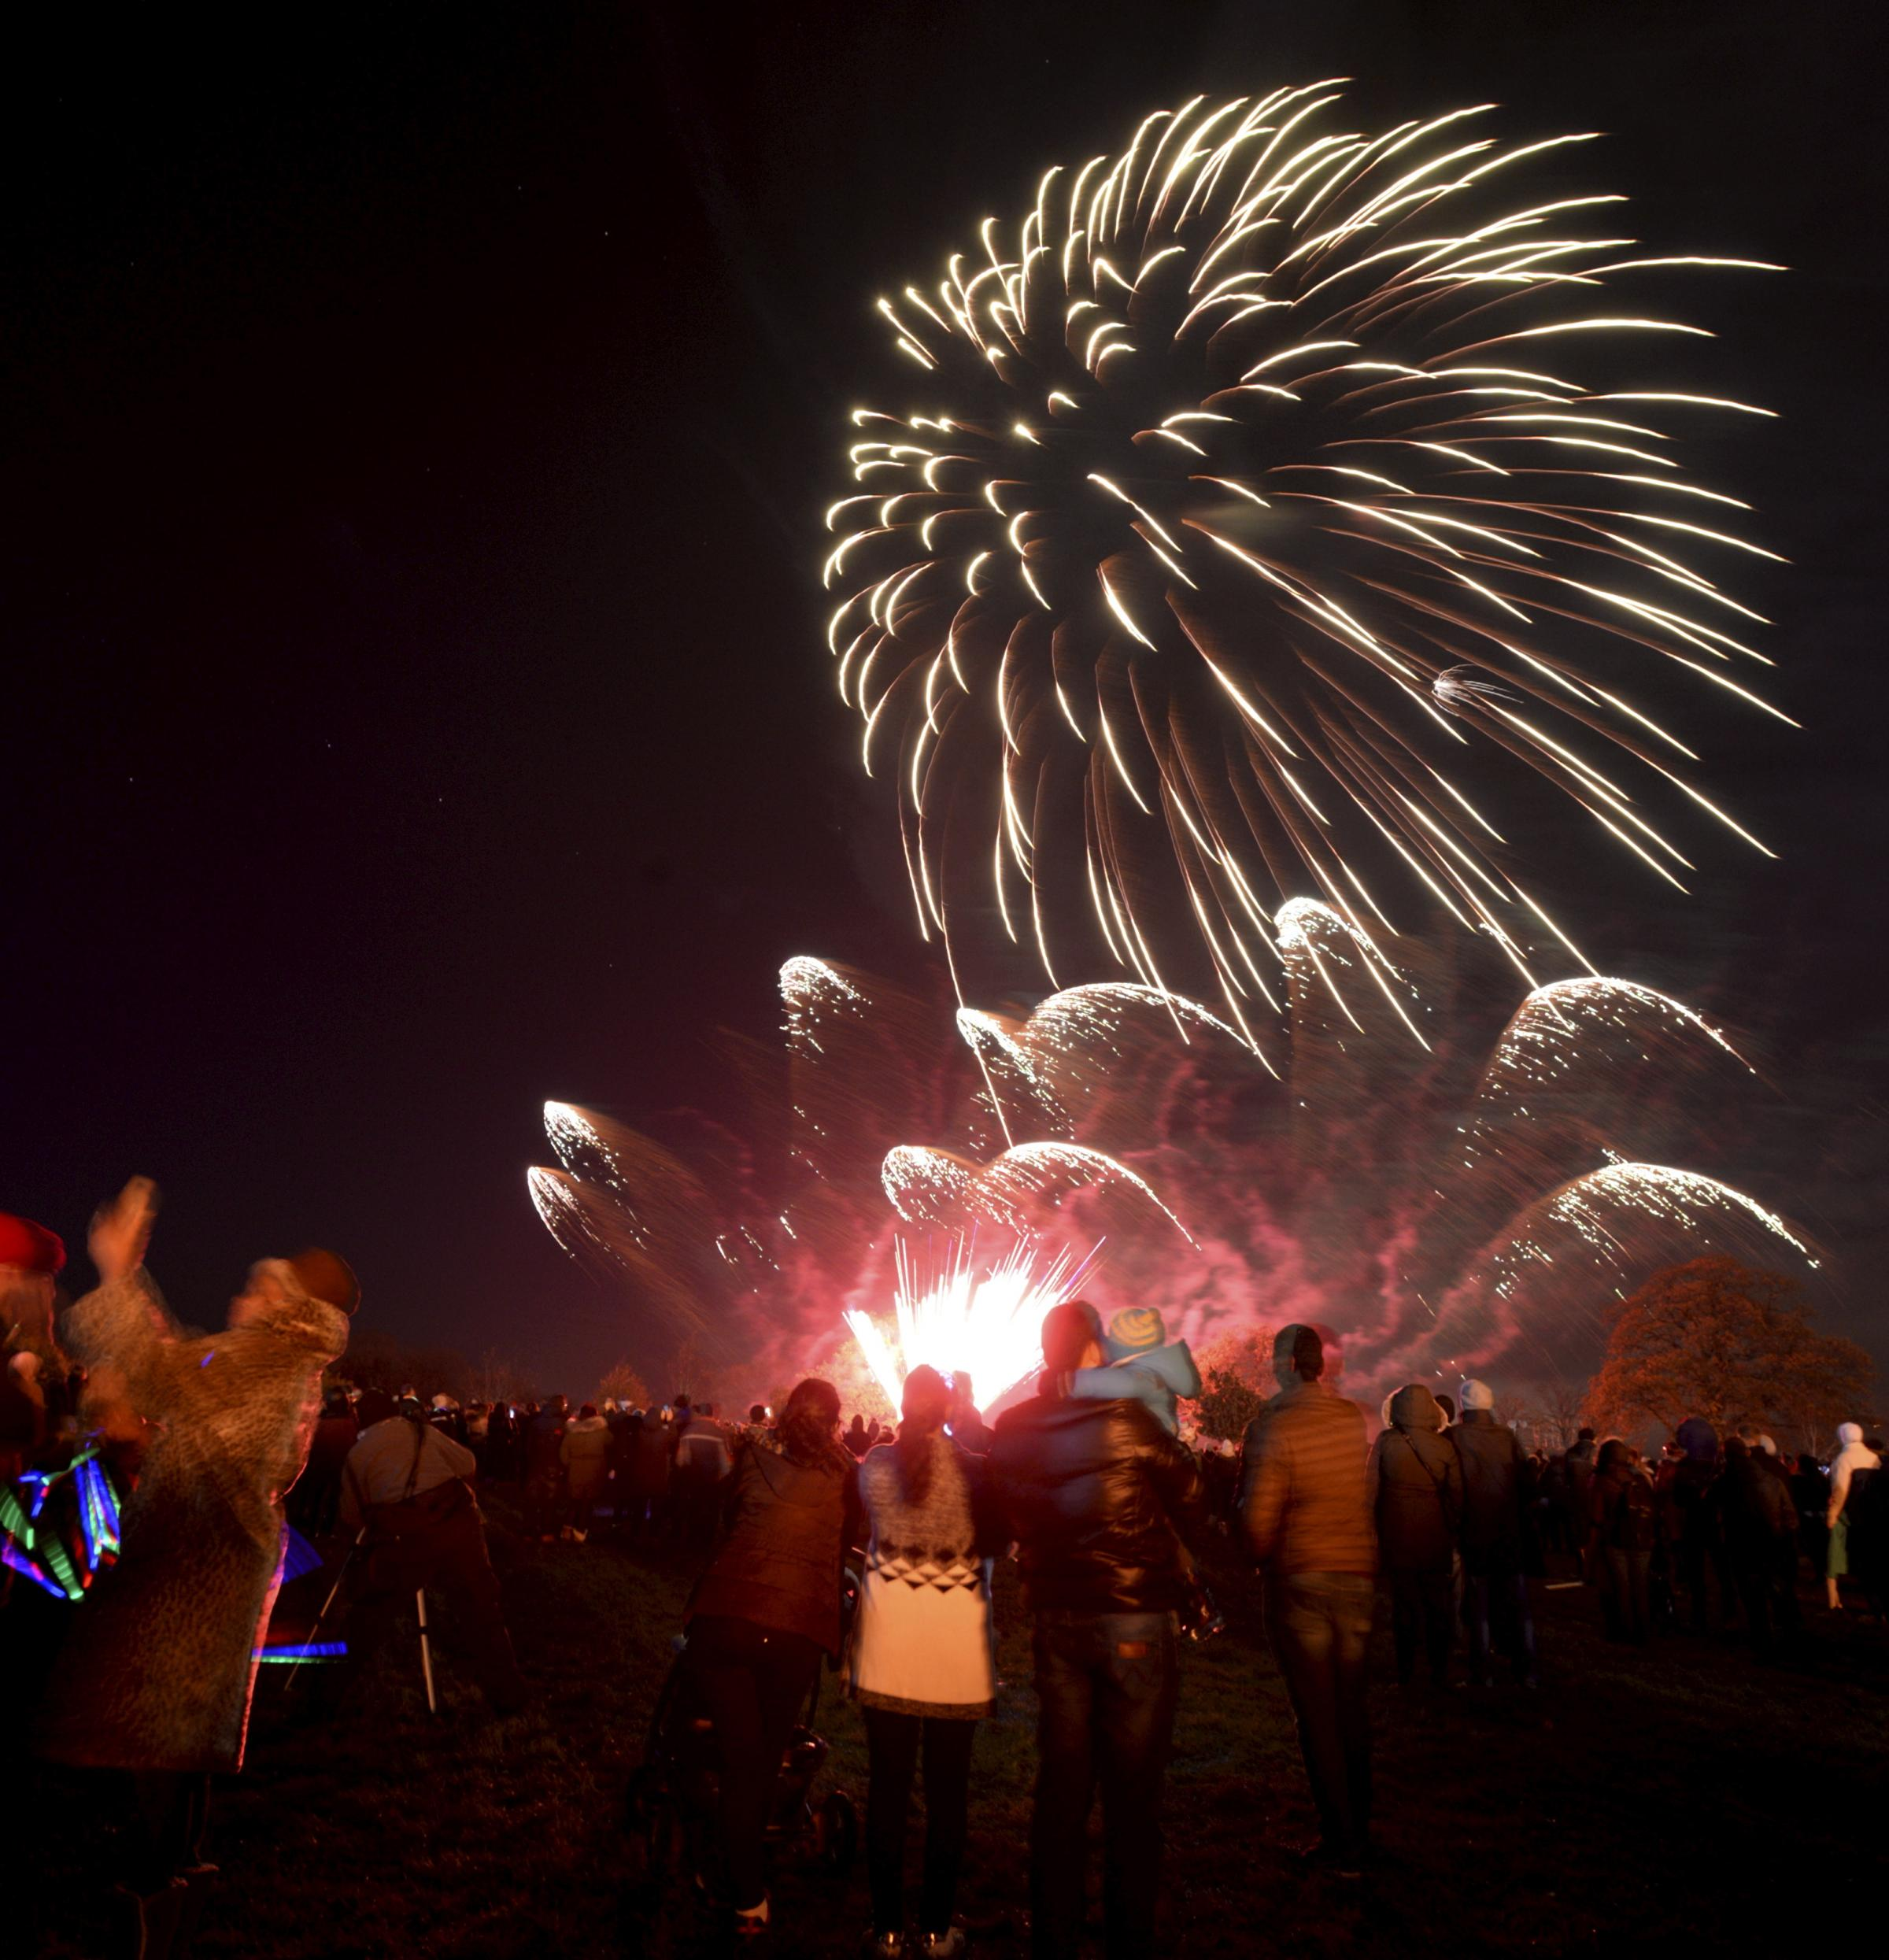 Should fireworks be restricted to Bonfire Night events? Picture: Paul Nicholls